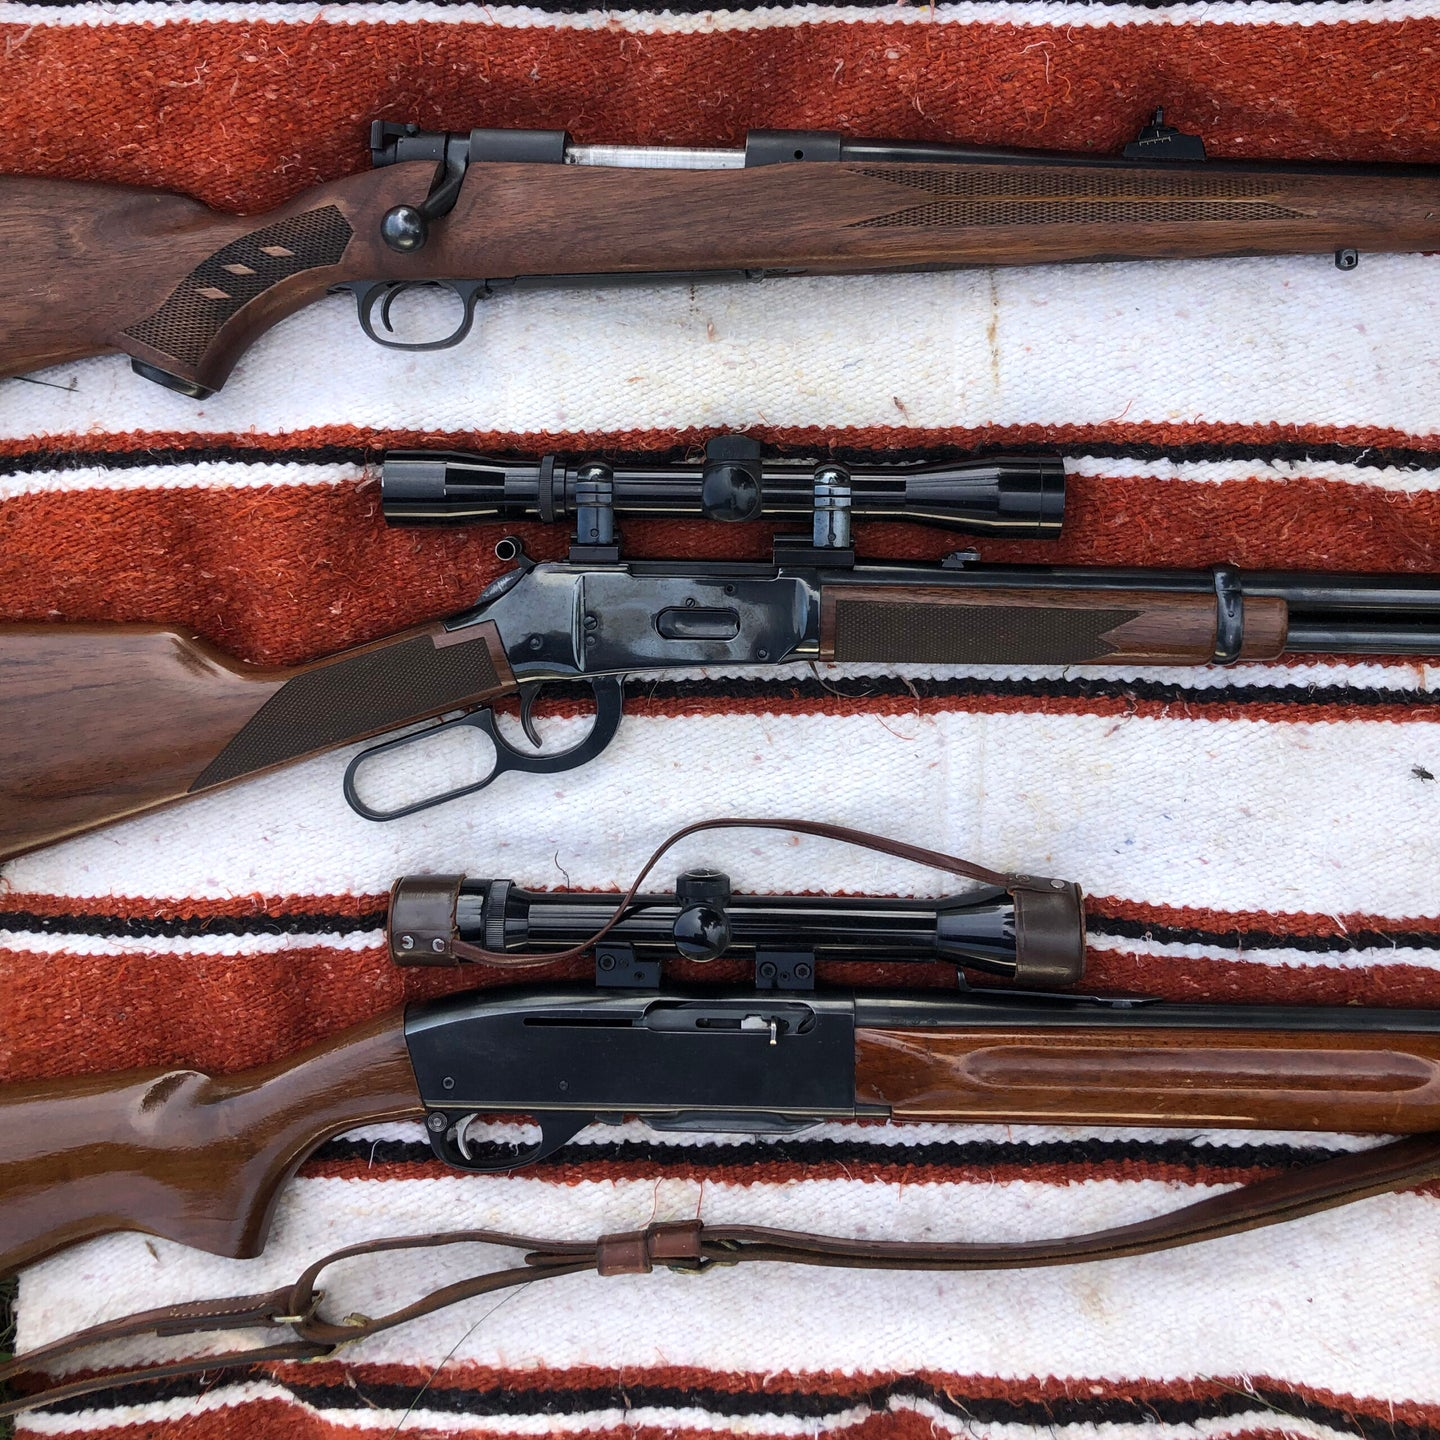 Three old rifles, two with scopes, on a woven red, white, and black blanket.